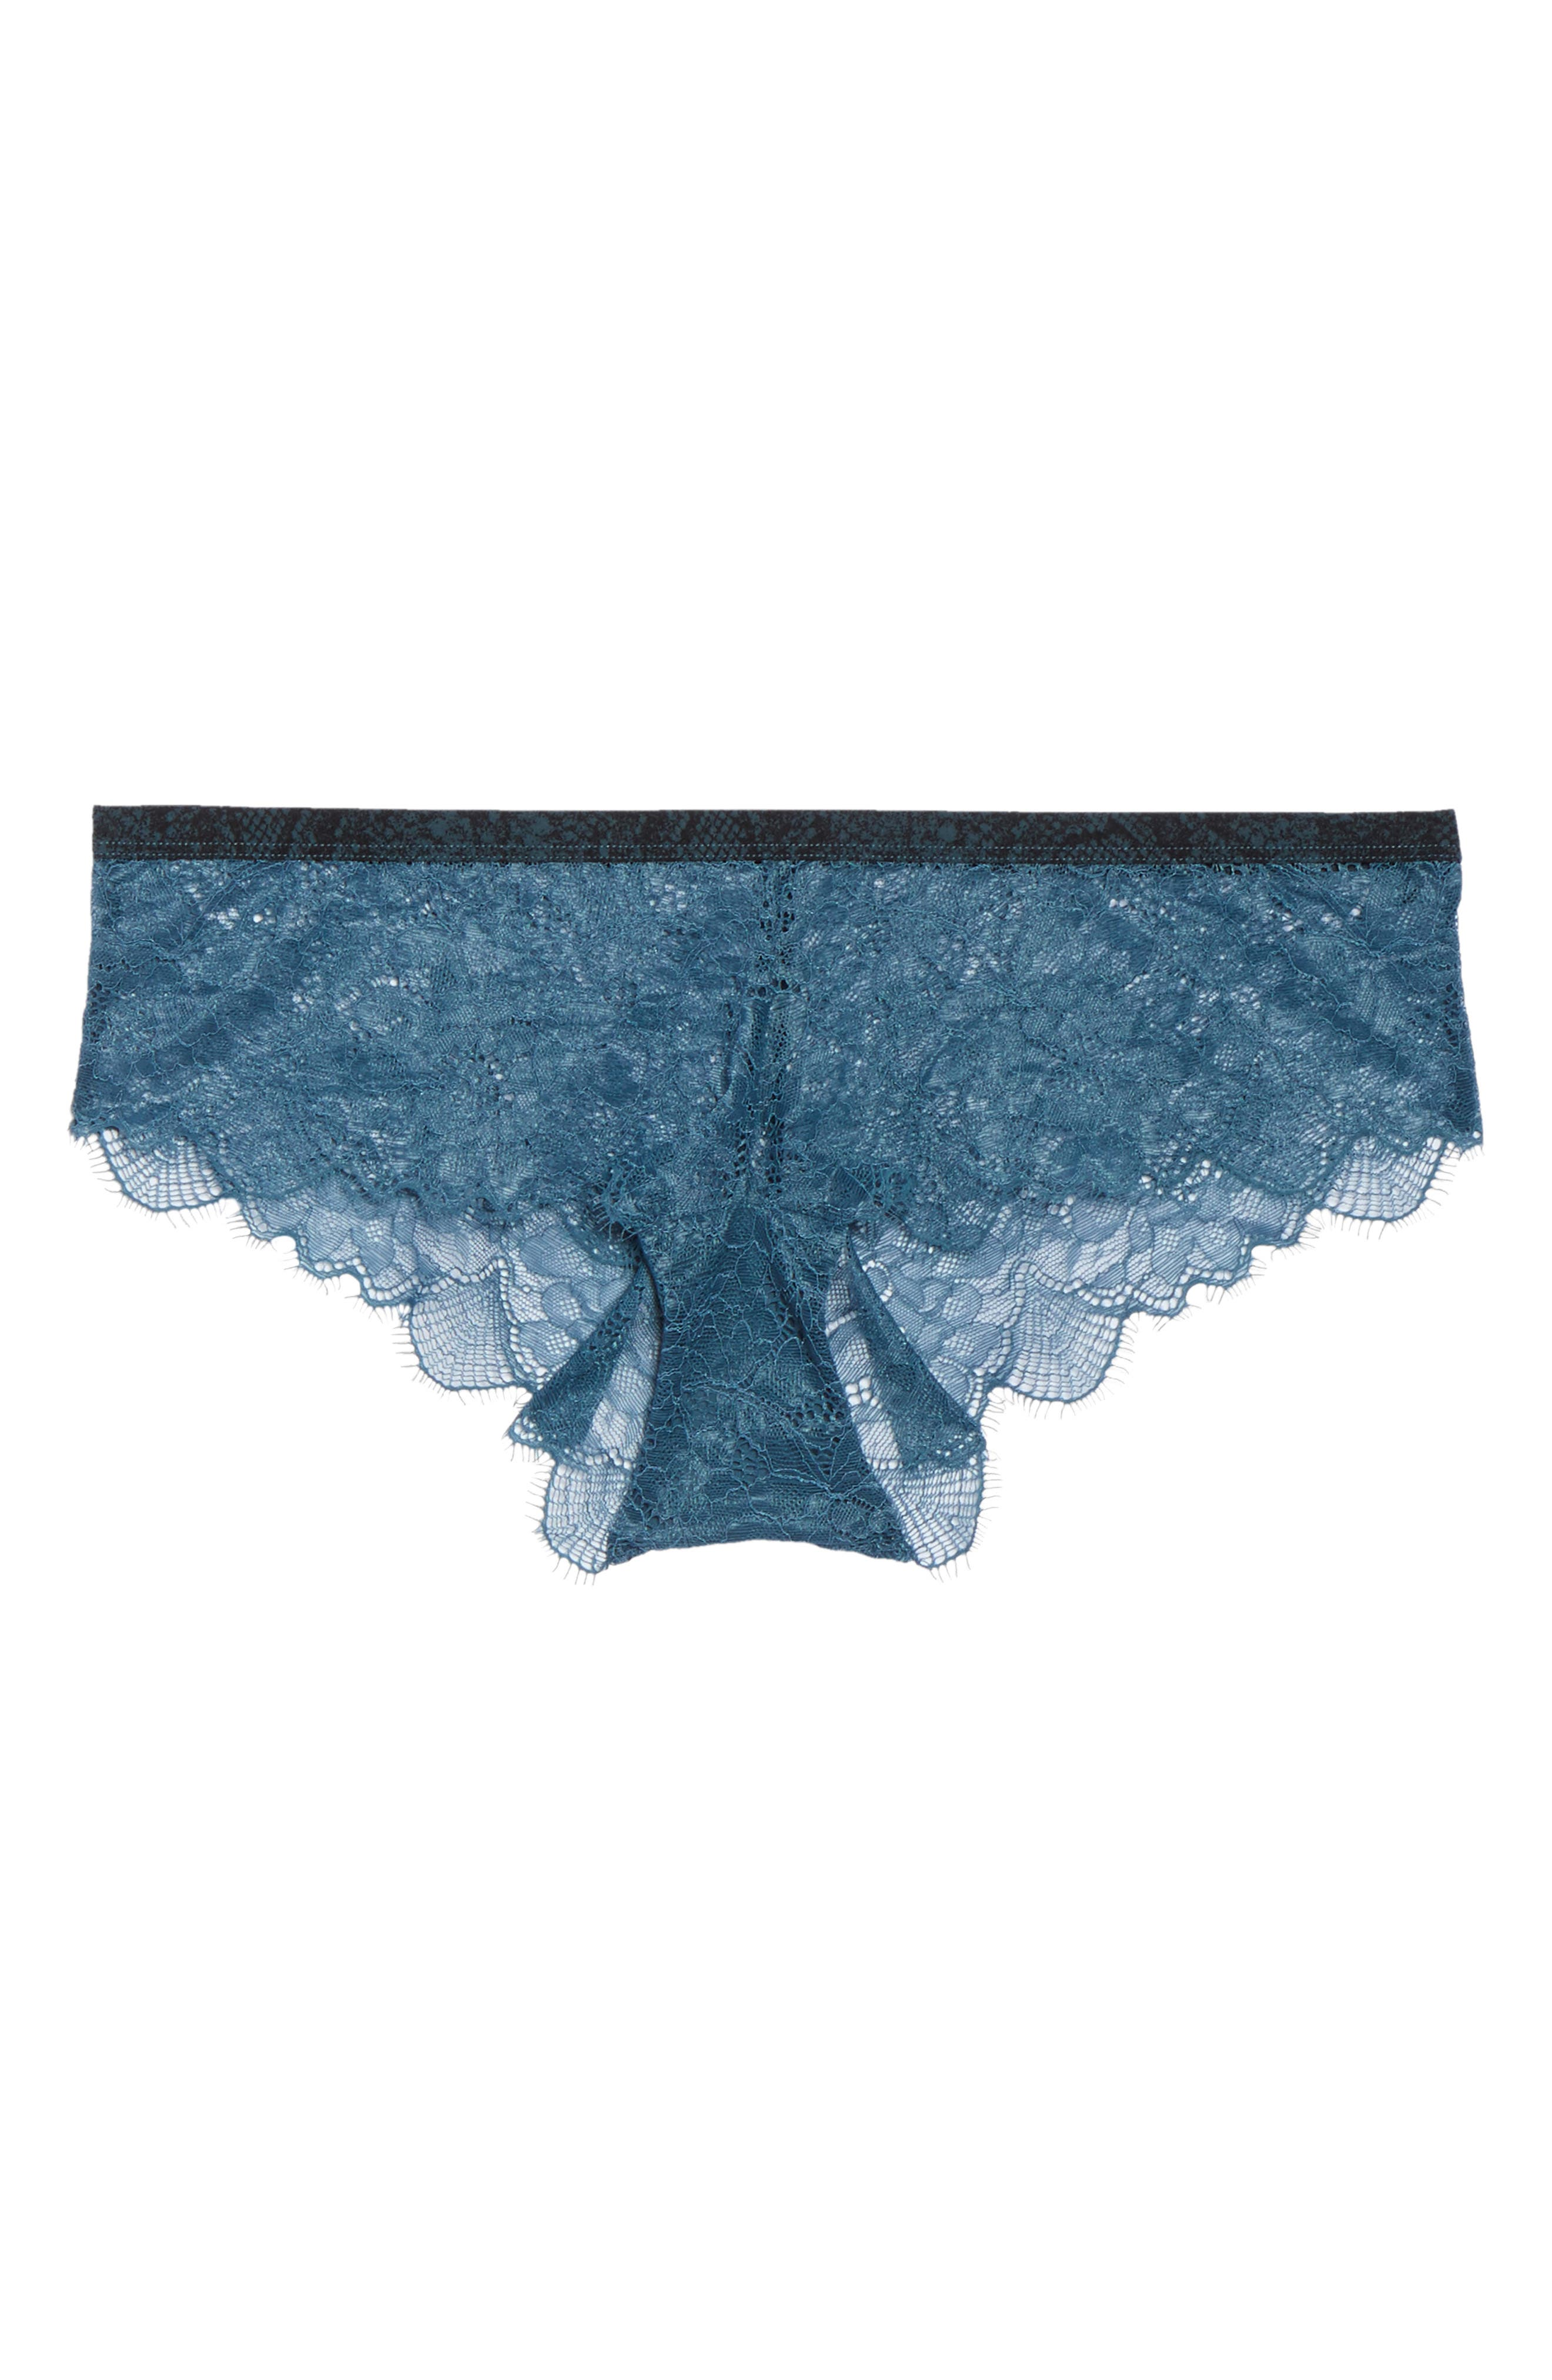 Dragonfly Lace Panties,                             Alternate thumbnail 14, color,